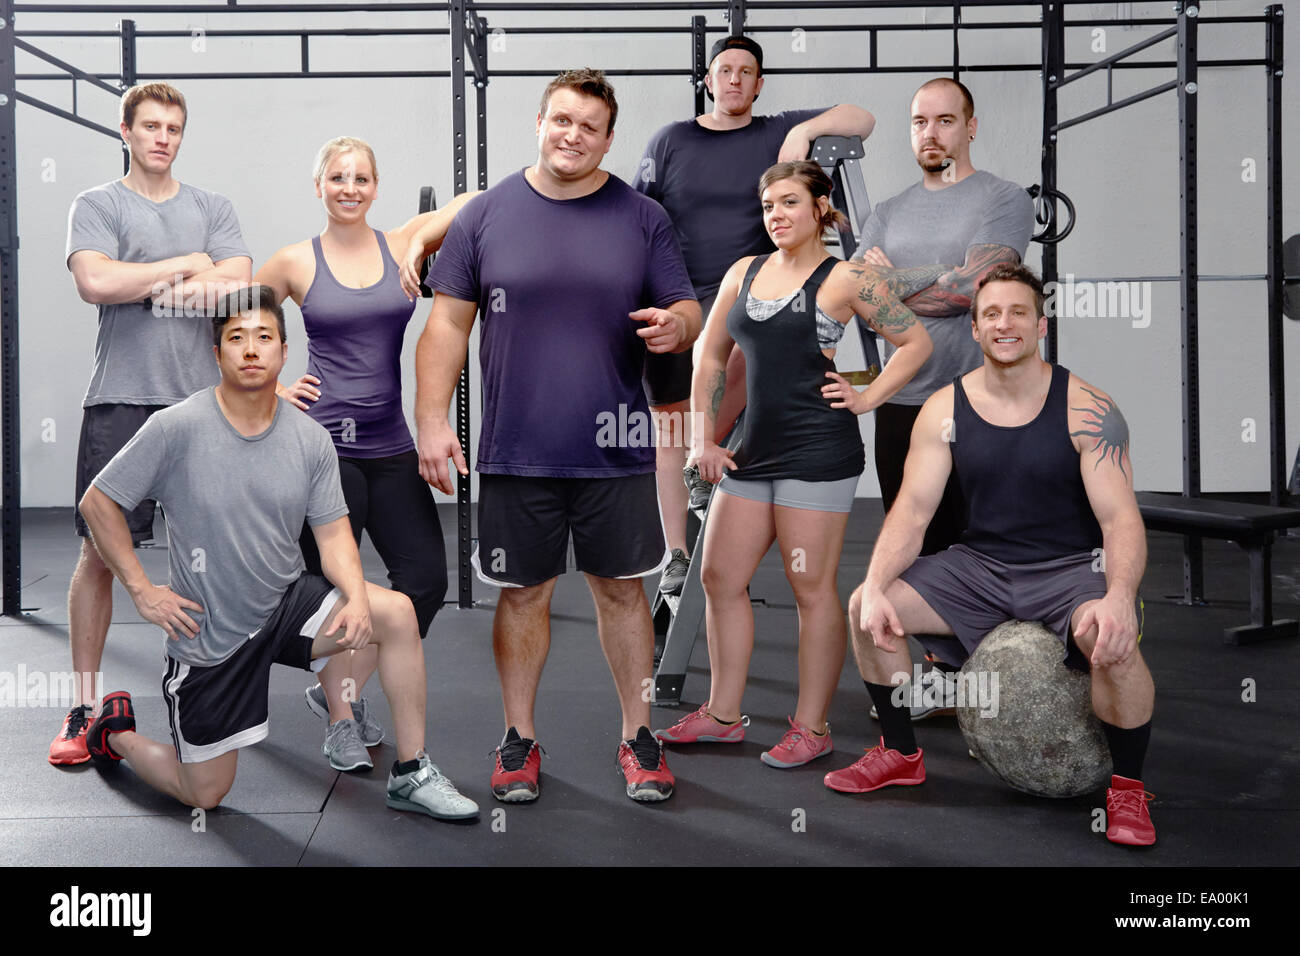 Portrait of eight people in gym - Stock Image